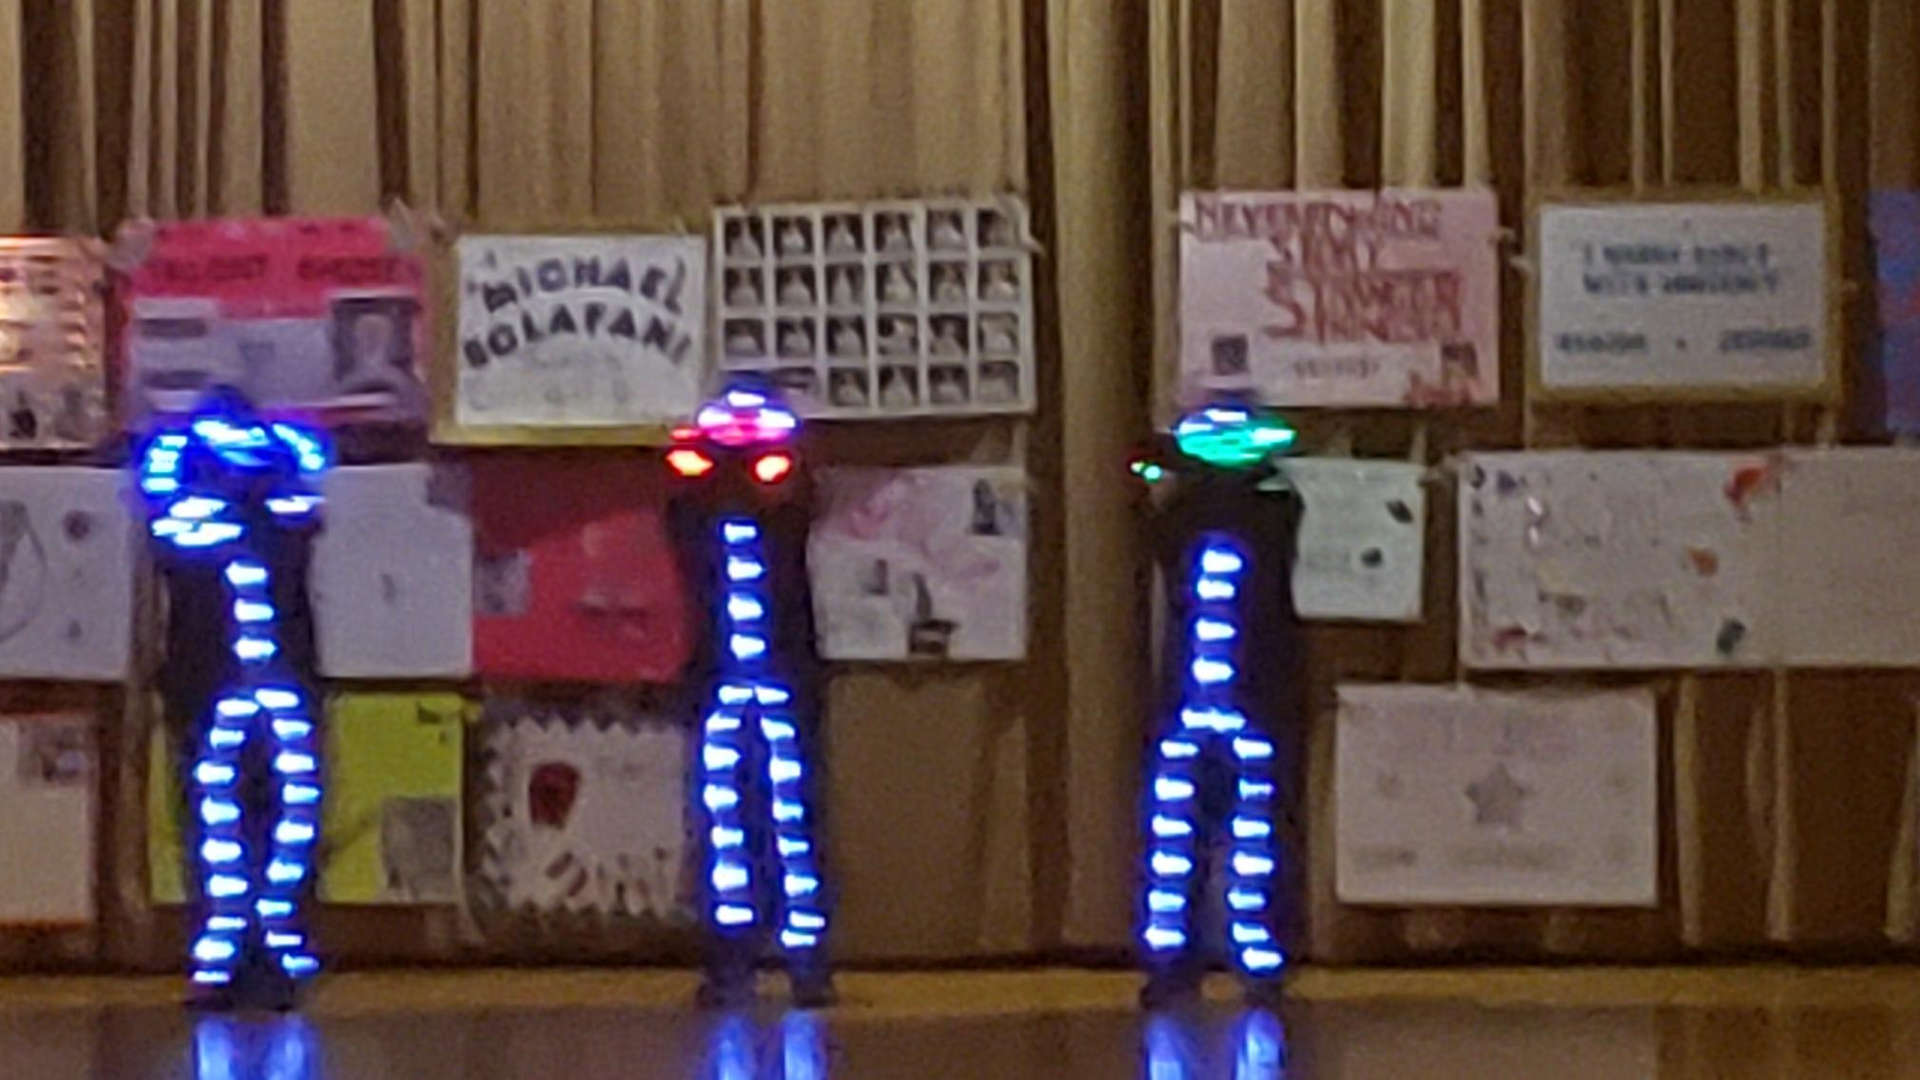 a. trio of dancers dressed in LCD lights as costumes